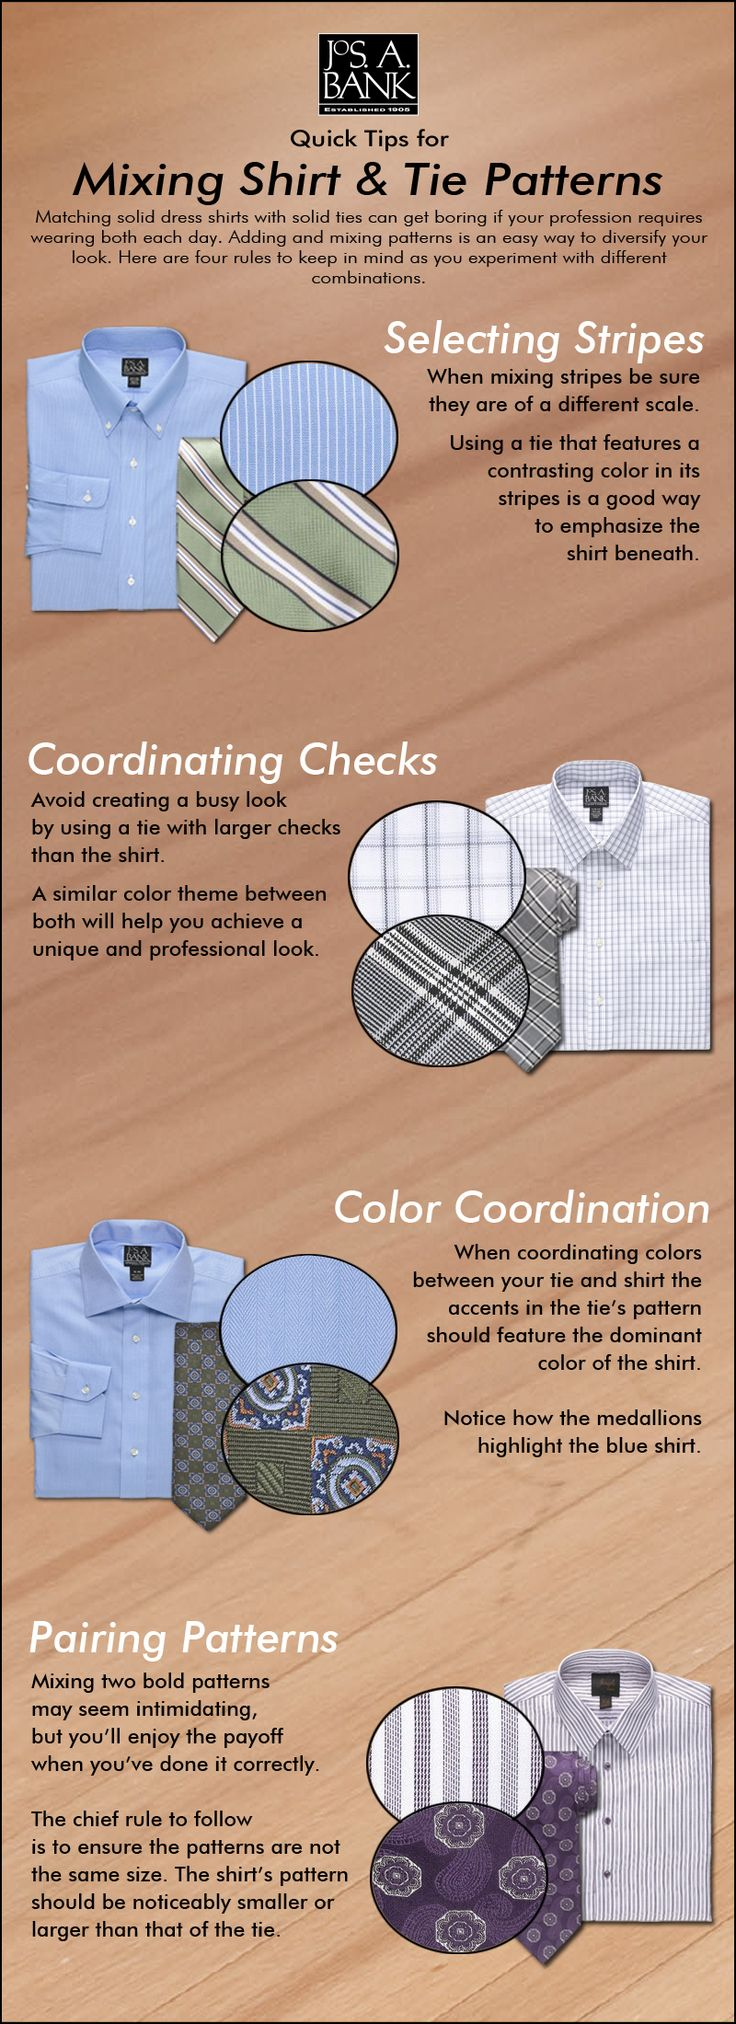 Is your wardrobe more shirt & tie than suit & tie? Here are a few tips on common shirt and tie pattern combinations.